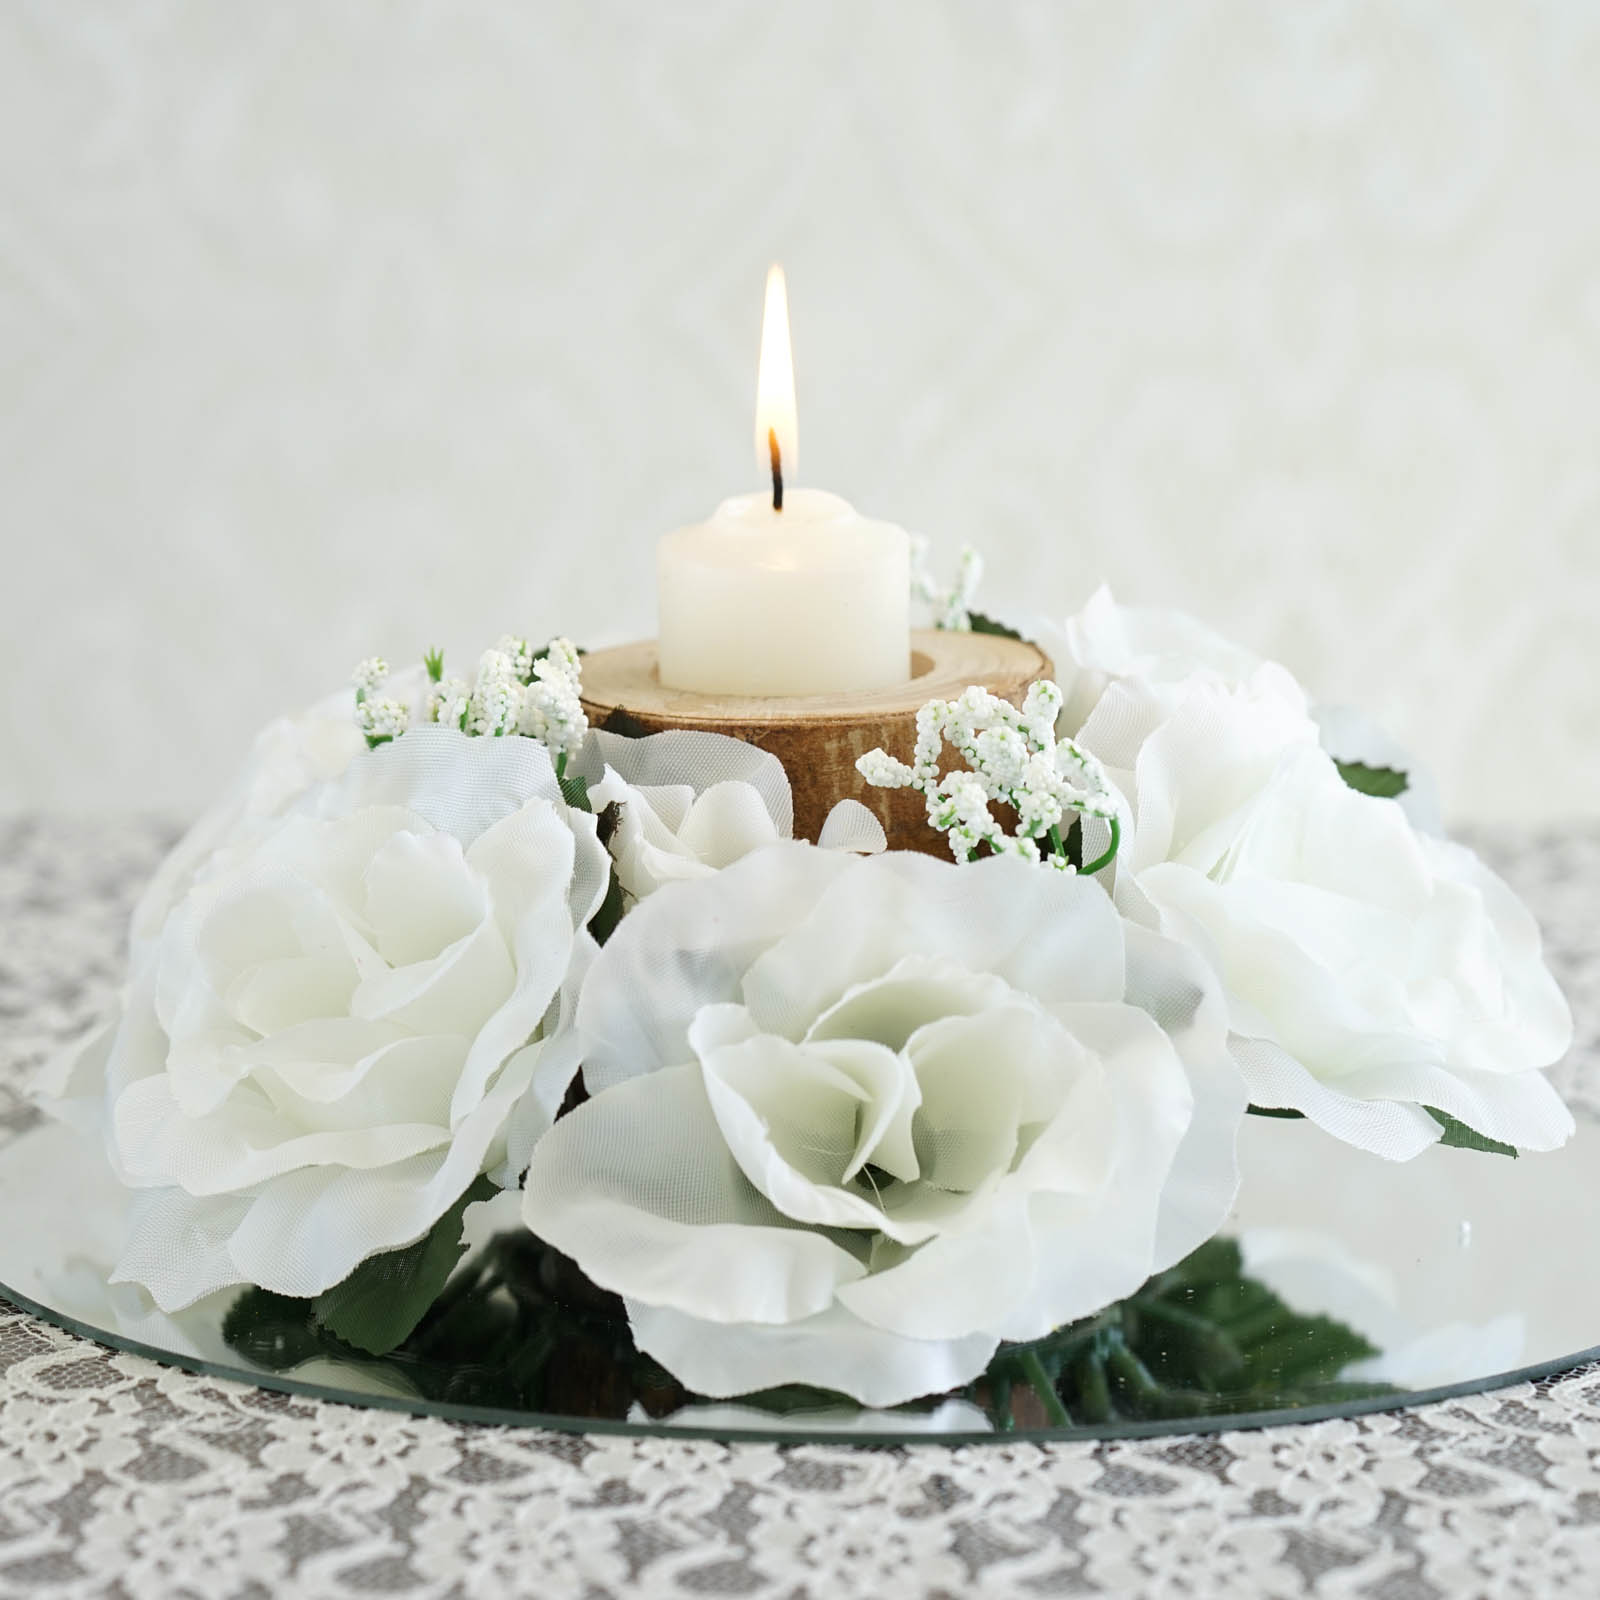 Efavormart 8 Pcs Artificial Roses Flowers Candle Rings For Diy